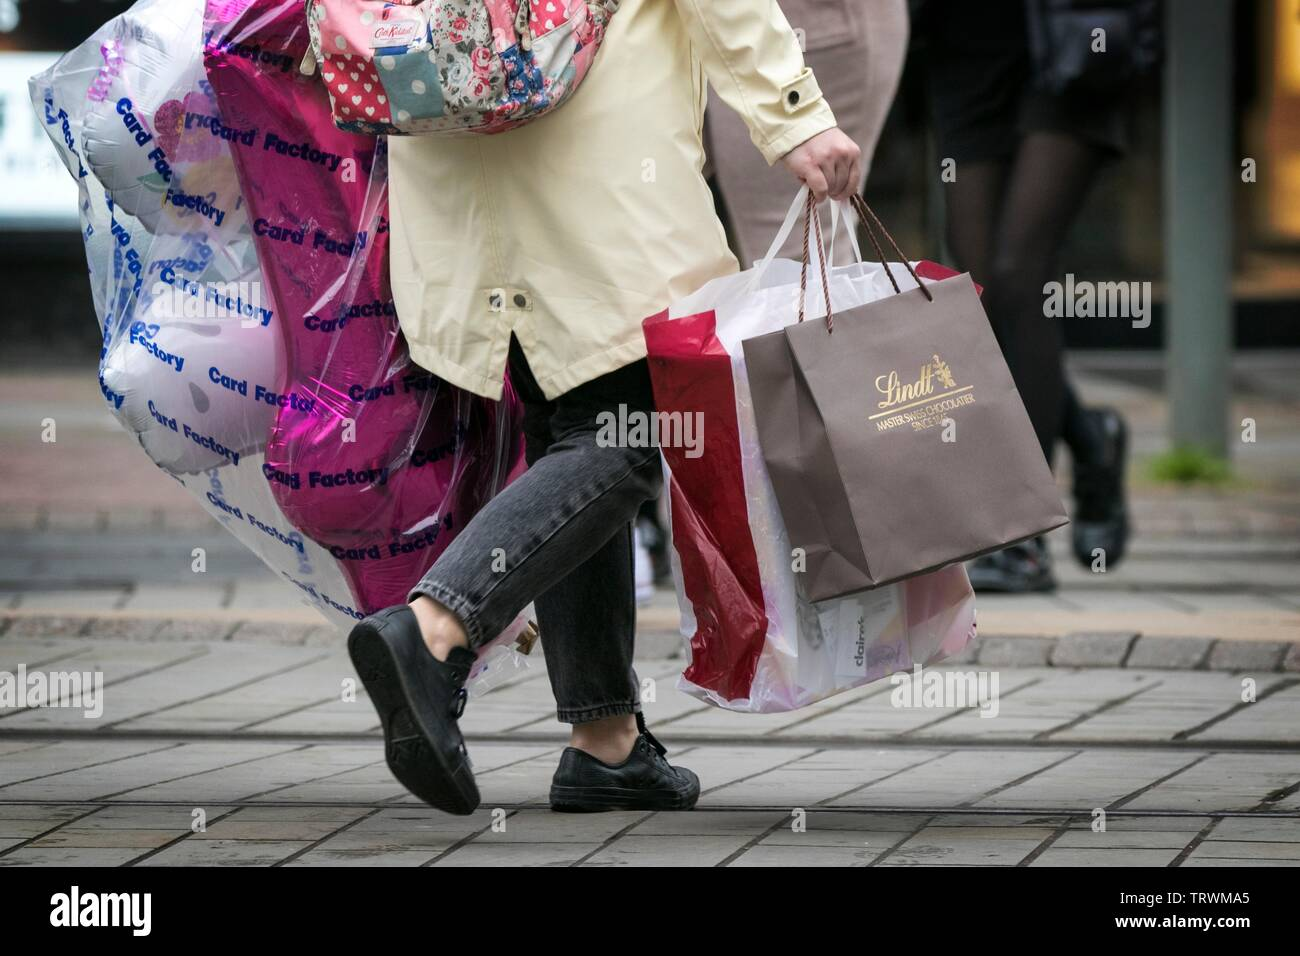 A woman carries multiple carrier bags after a shopping trip through the streets of Manchester, UK Stock Photo